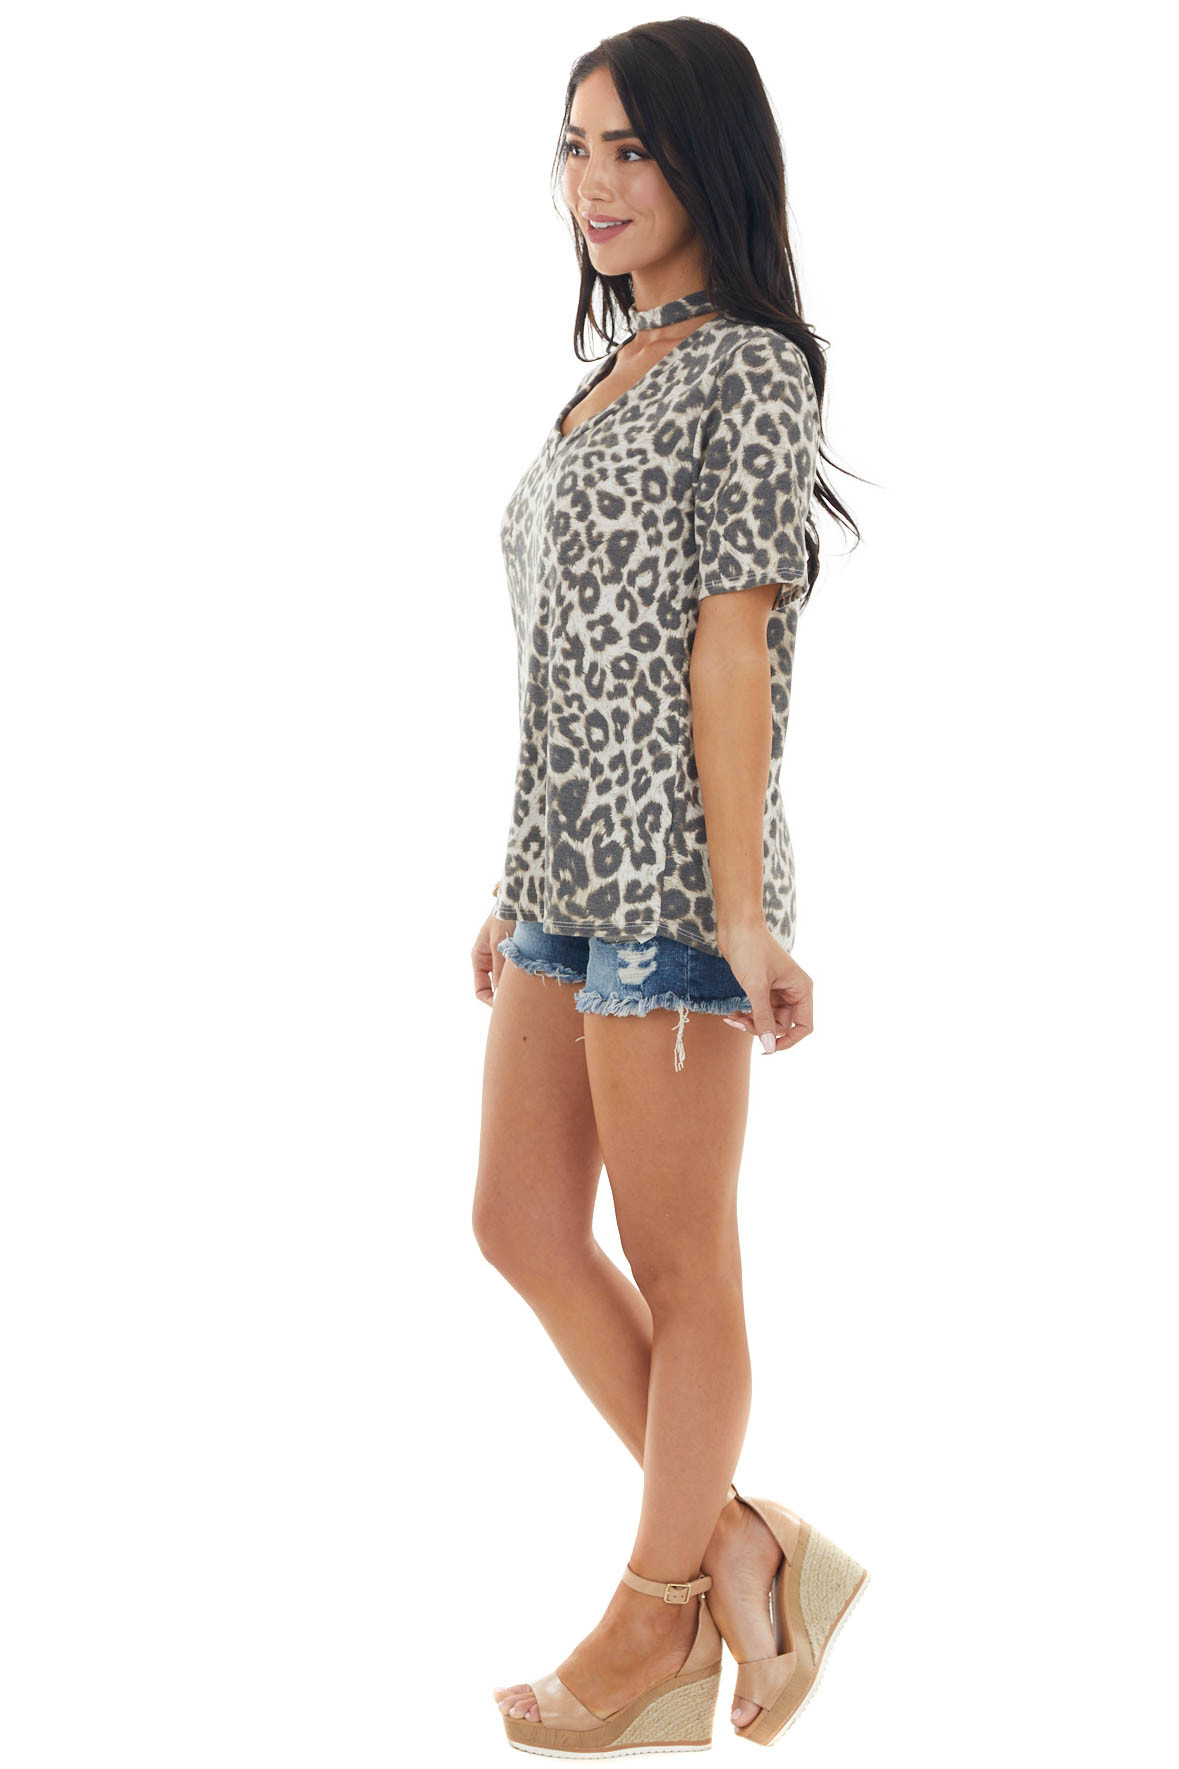 Ivory and Mocha Leopard Print V Neck Top with Choker Detail